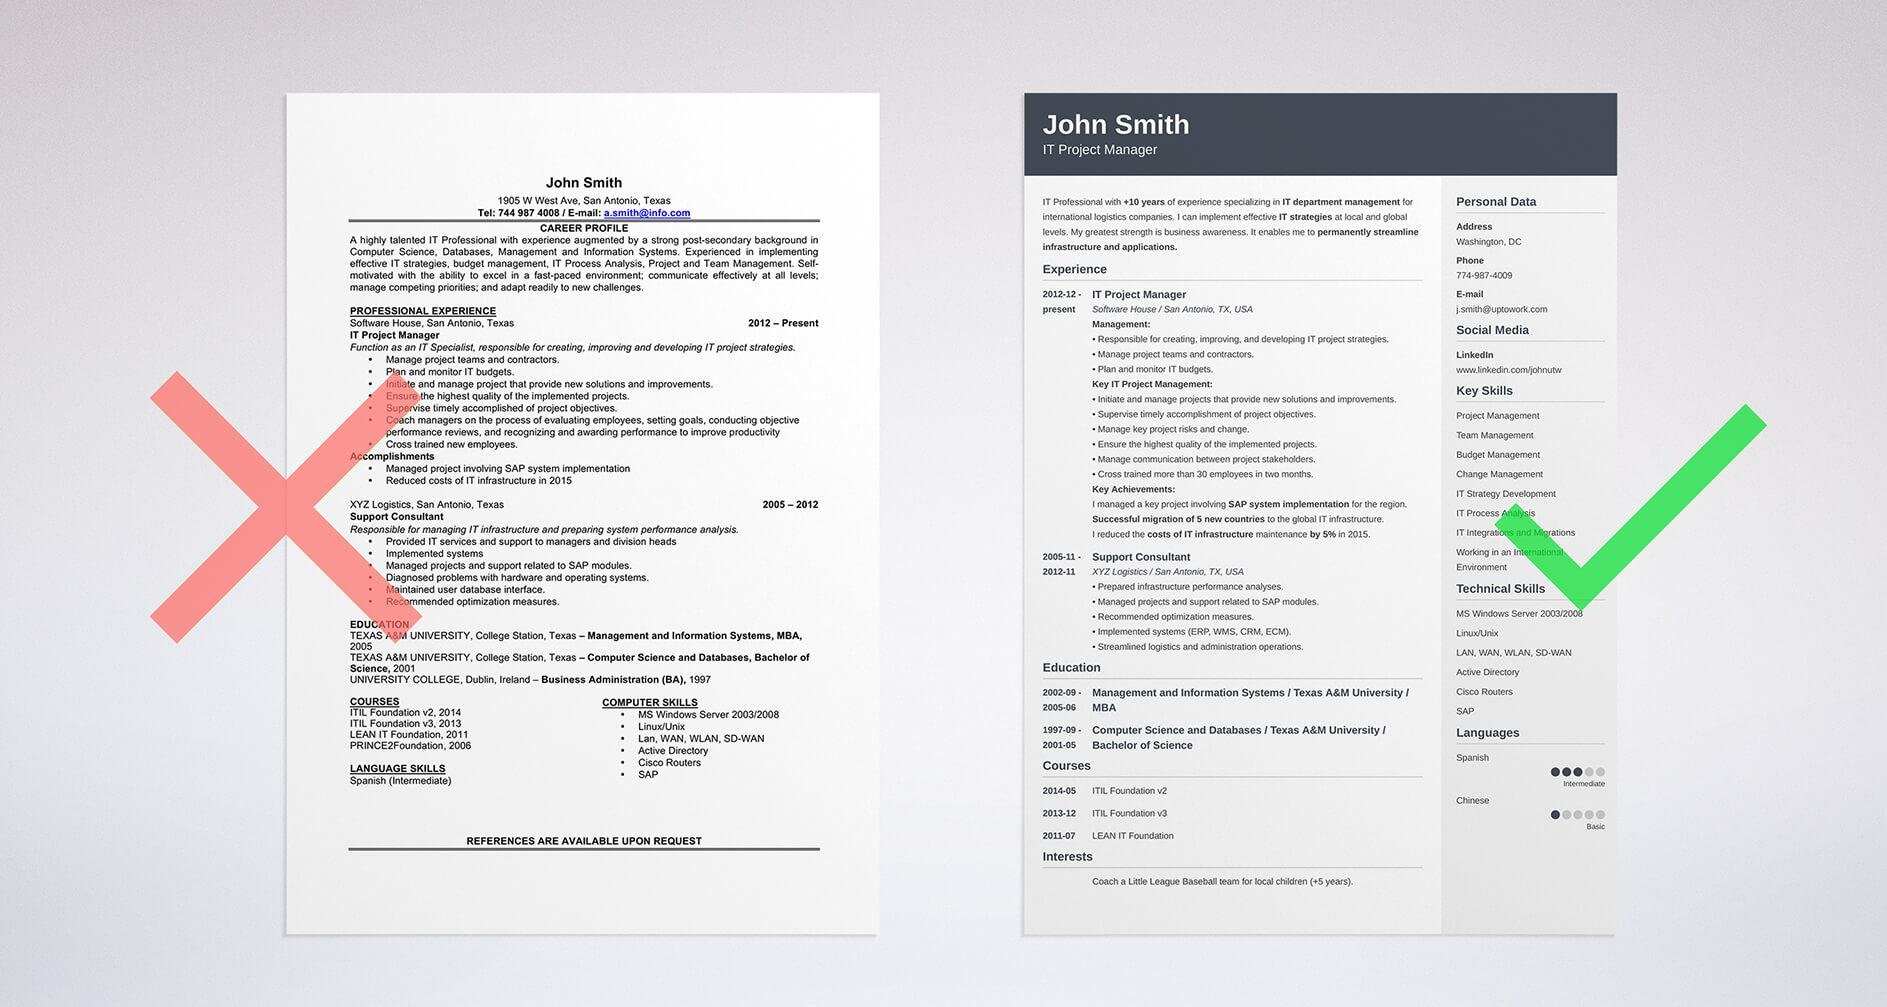 emailing resume job application email samples forwarding through to get more jobs skills Resume Forwarding Resume Through Email